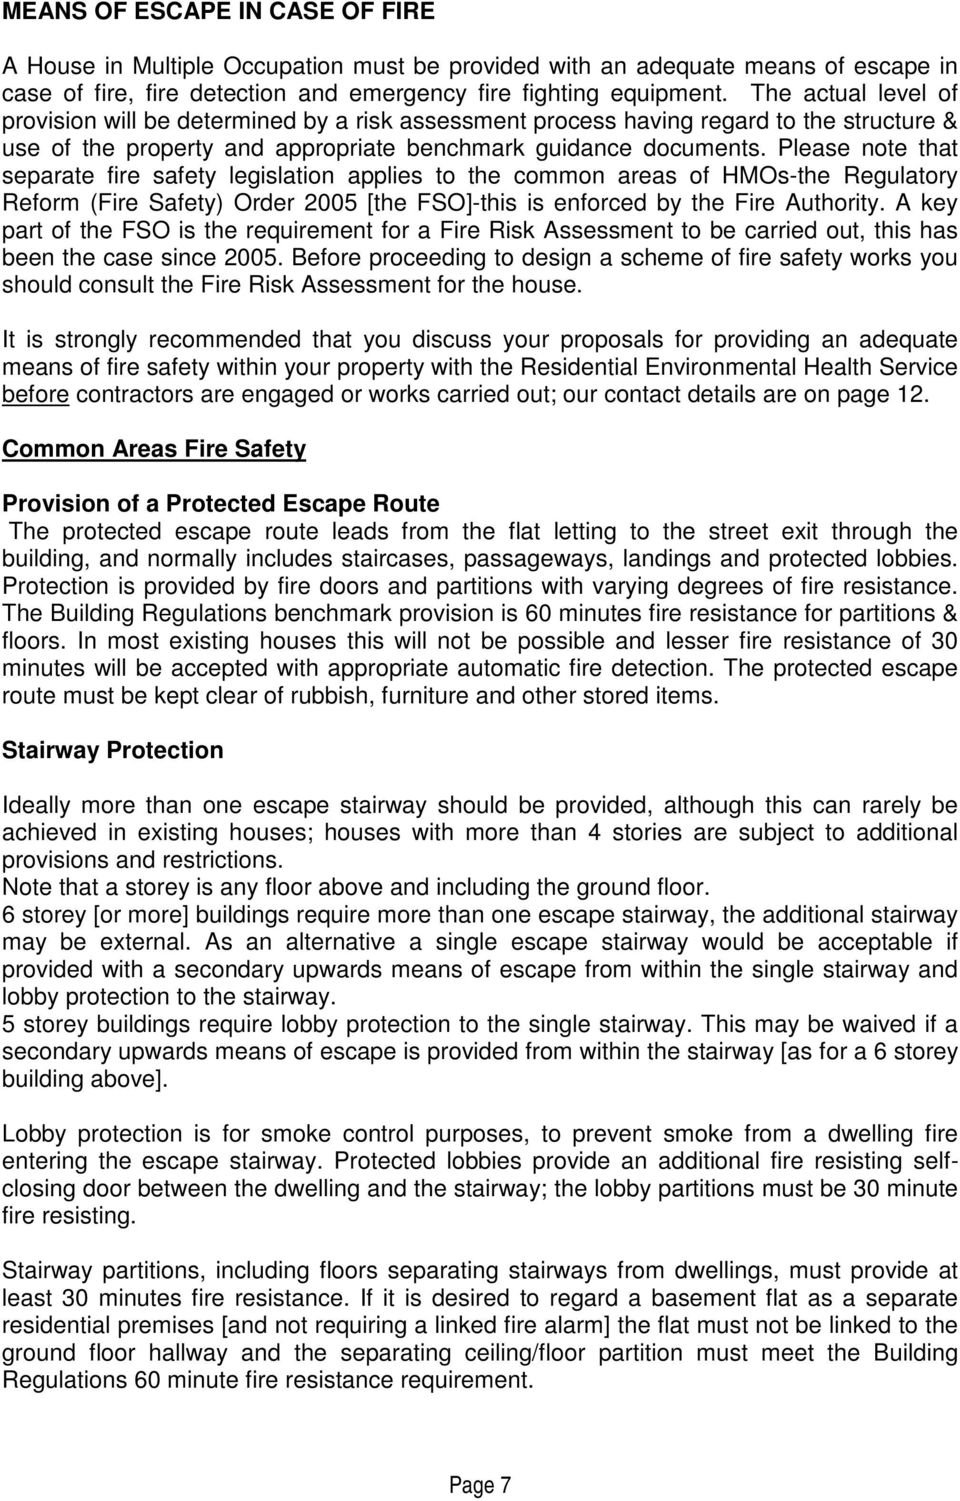 Please note that separate fire safety legislation applies to the common areas of HMOs-the Regulatory Reform (Fire Safety) Order 2005 [the FSO]-this is enforced by the Fire Authority.